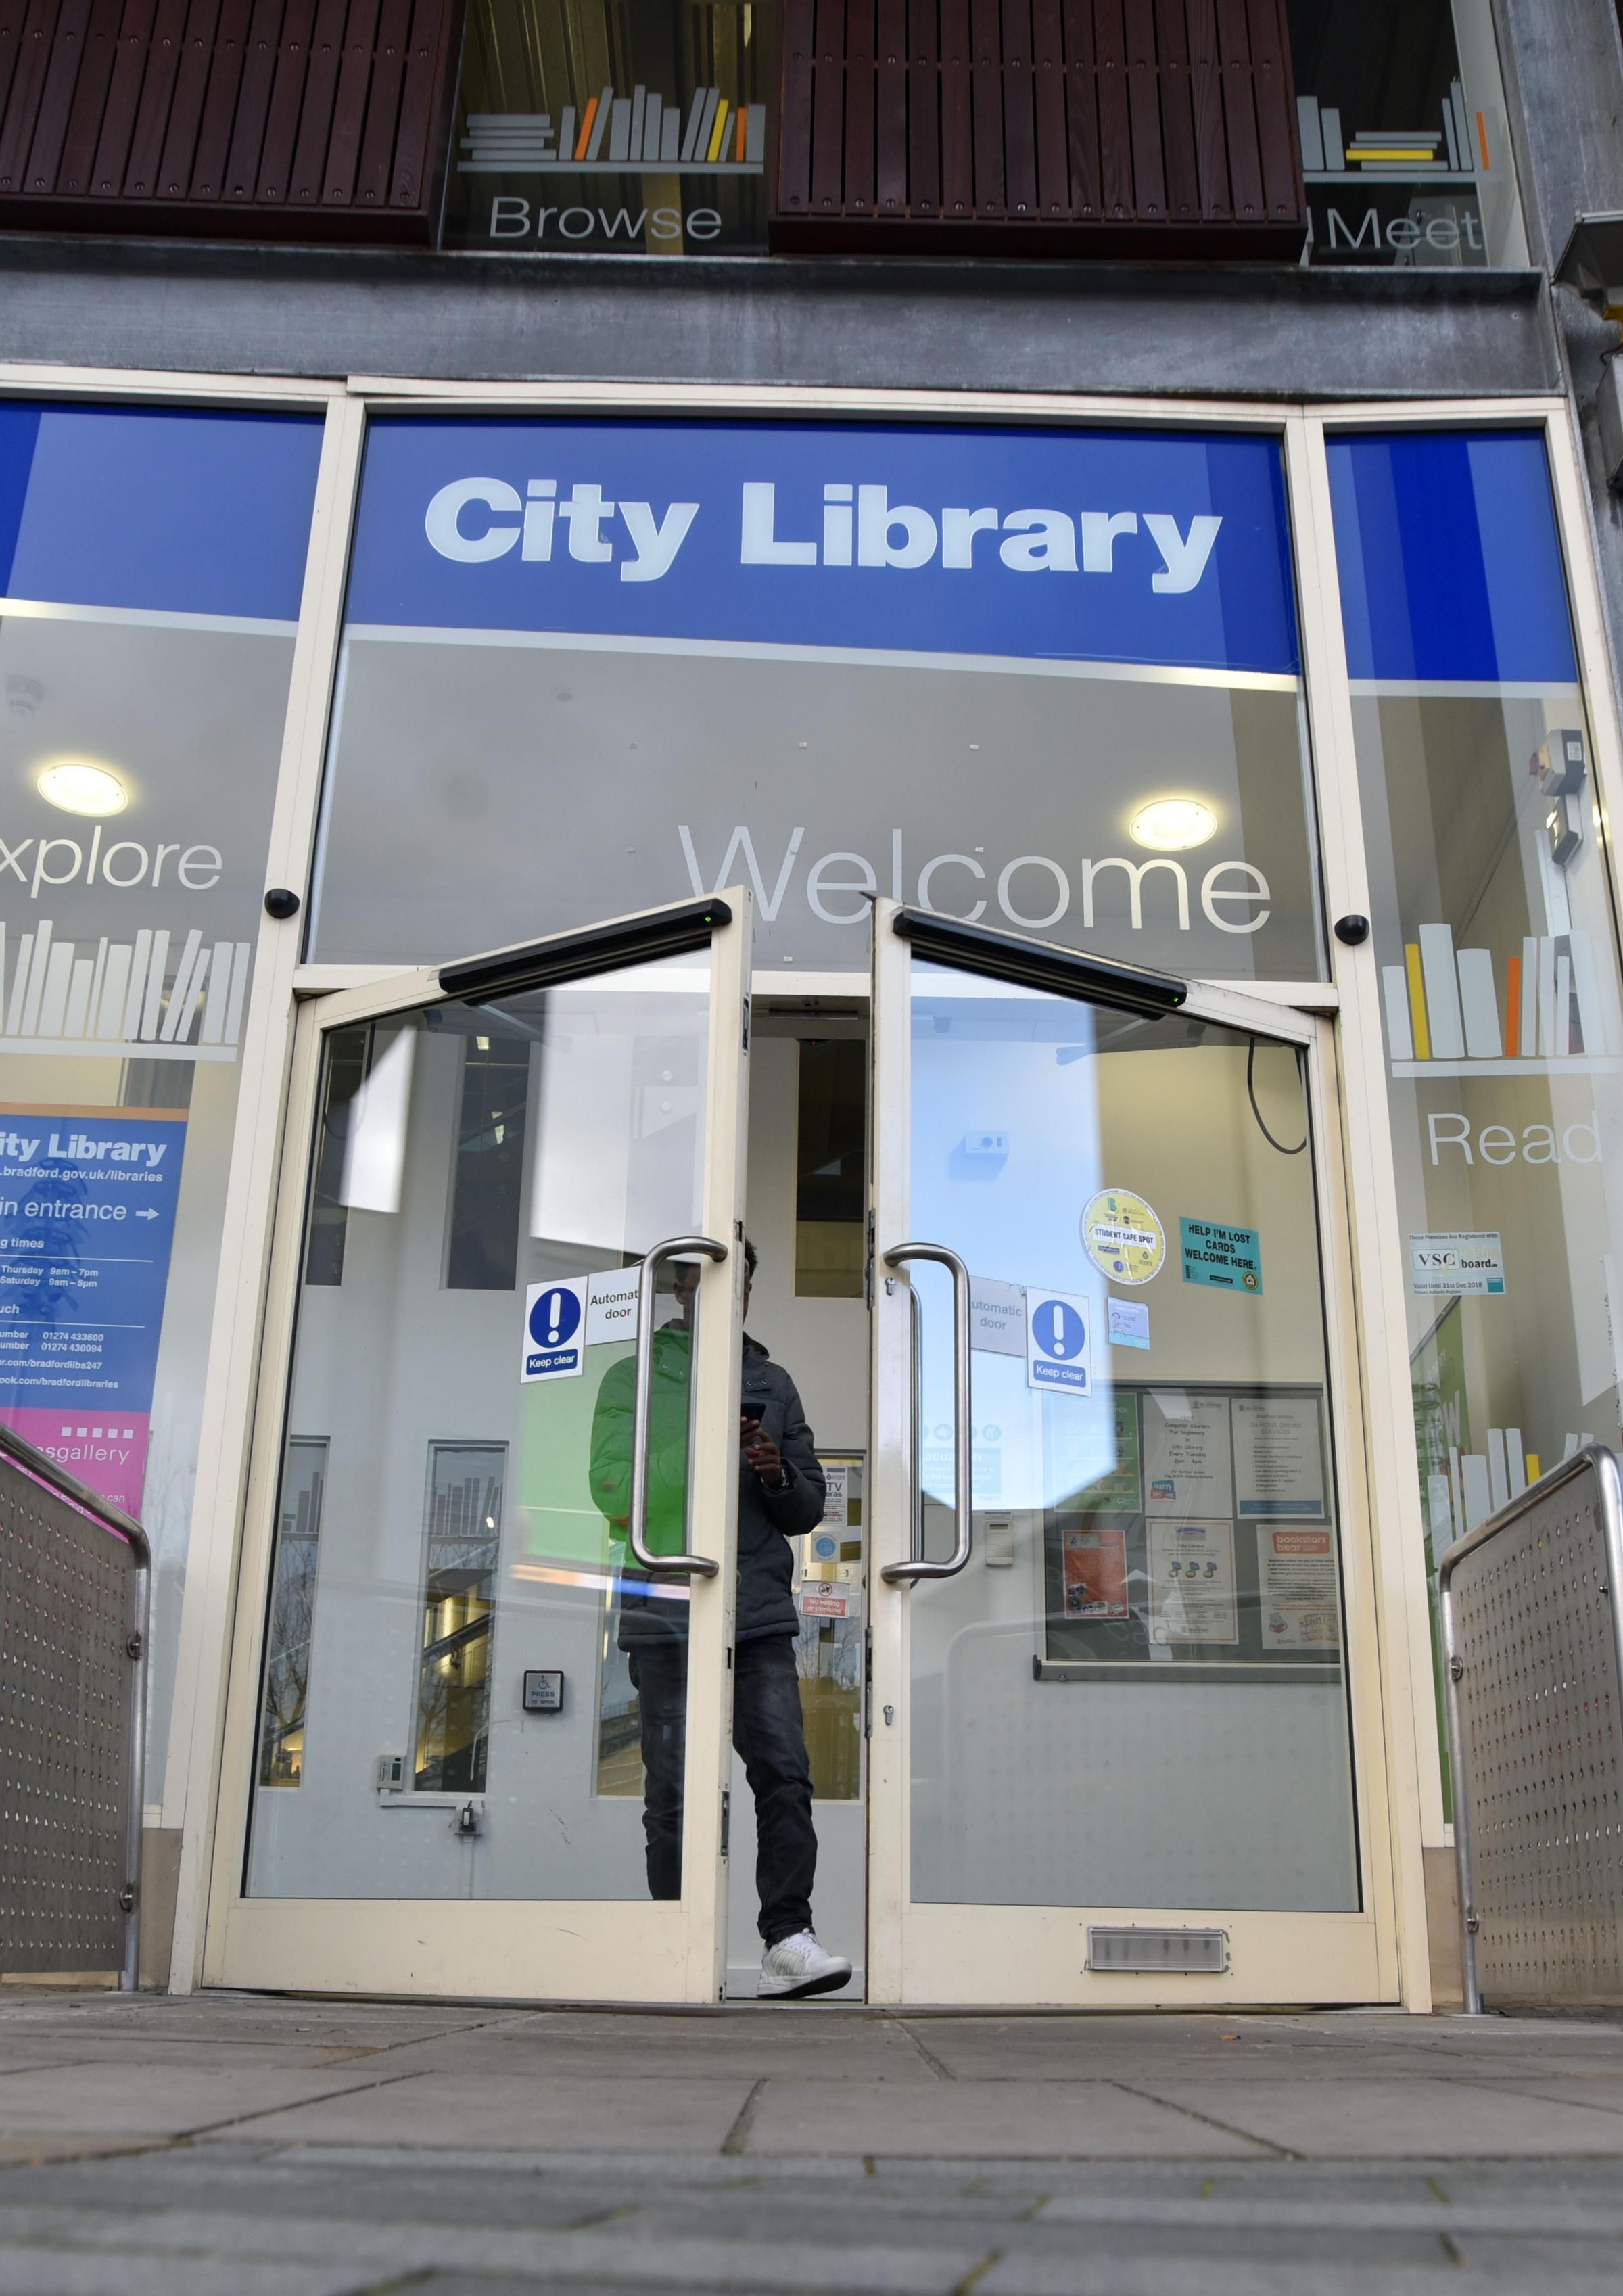 Bradford central Library will become a community hub under the new plans